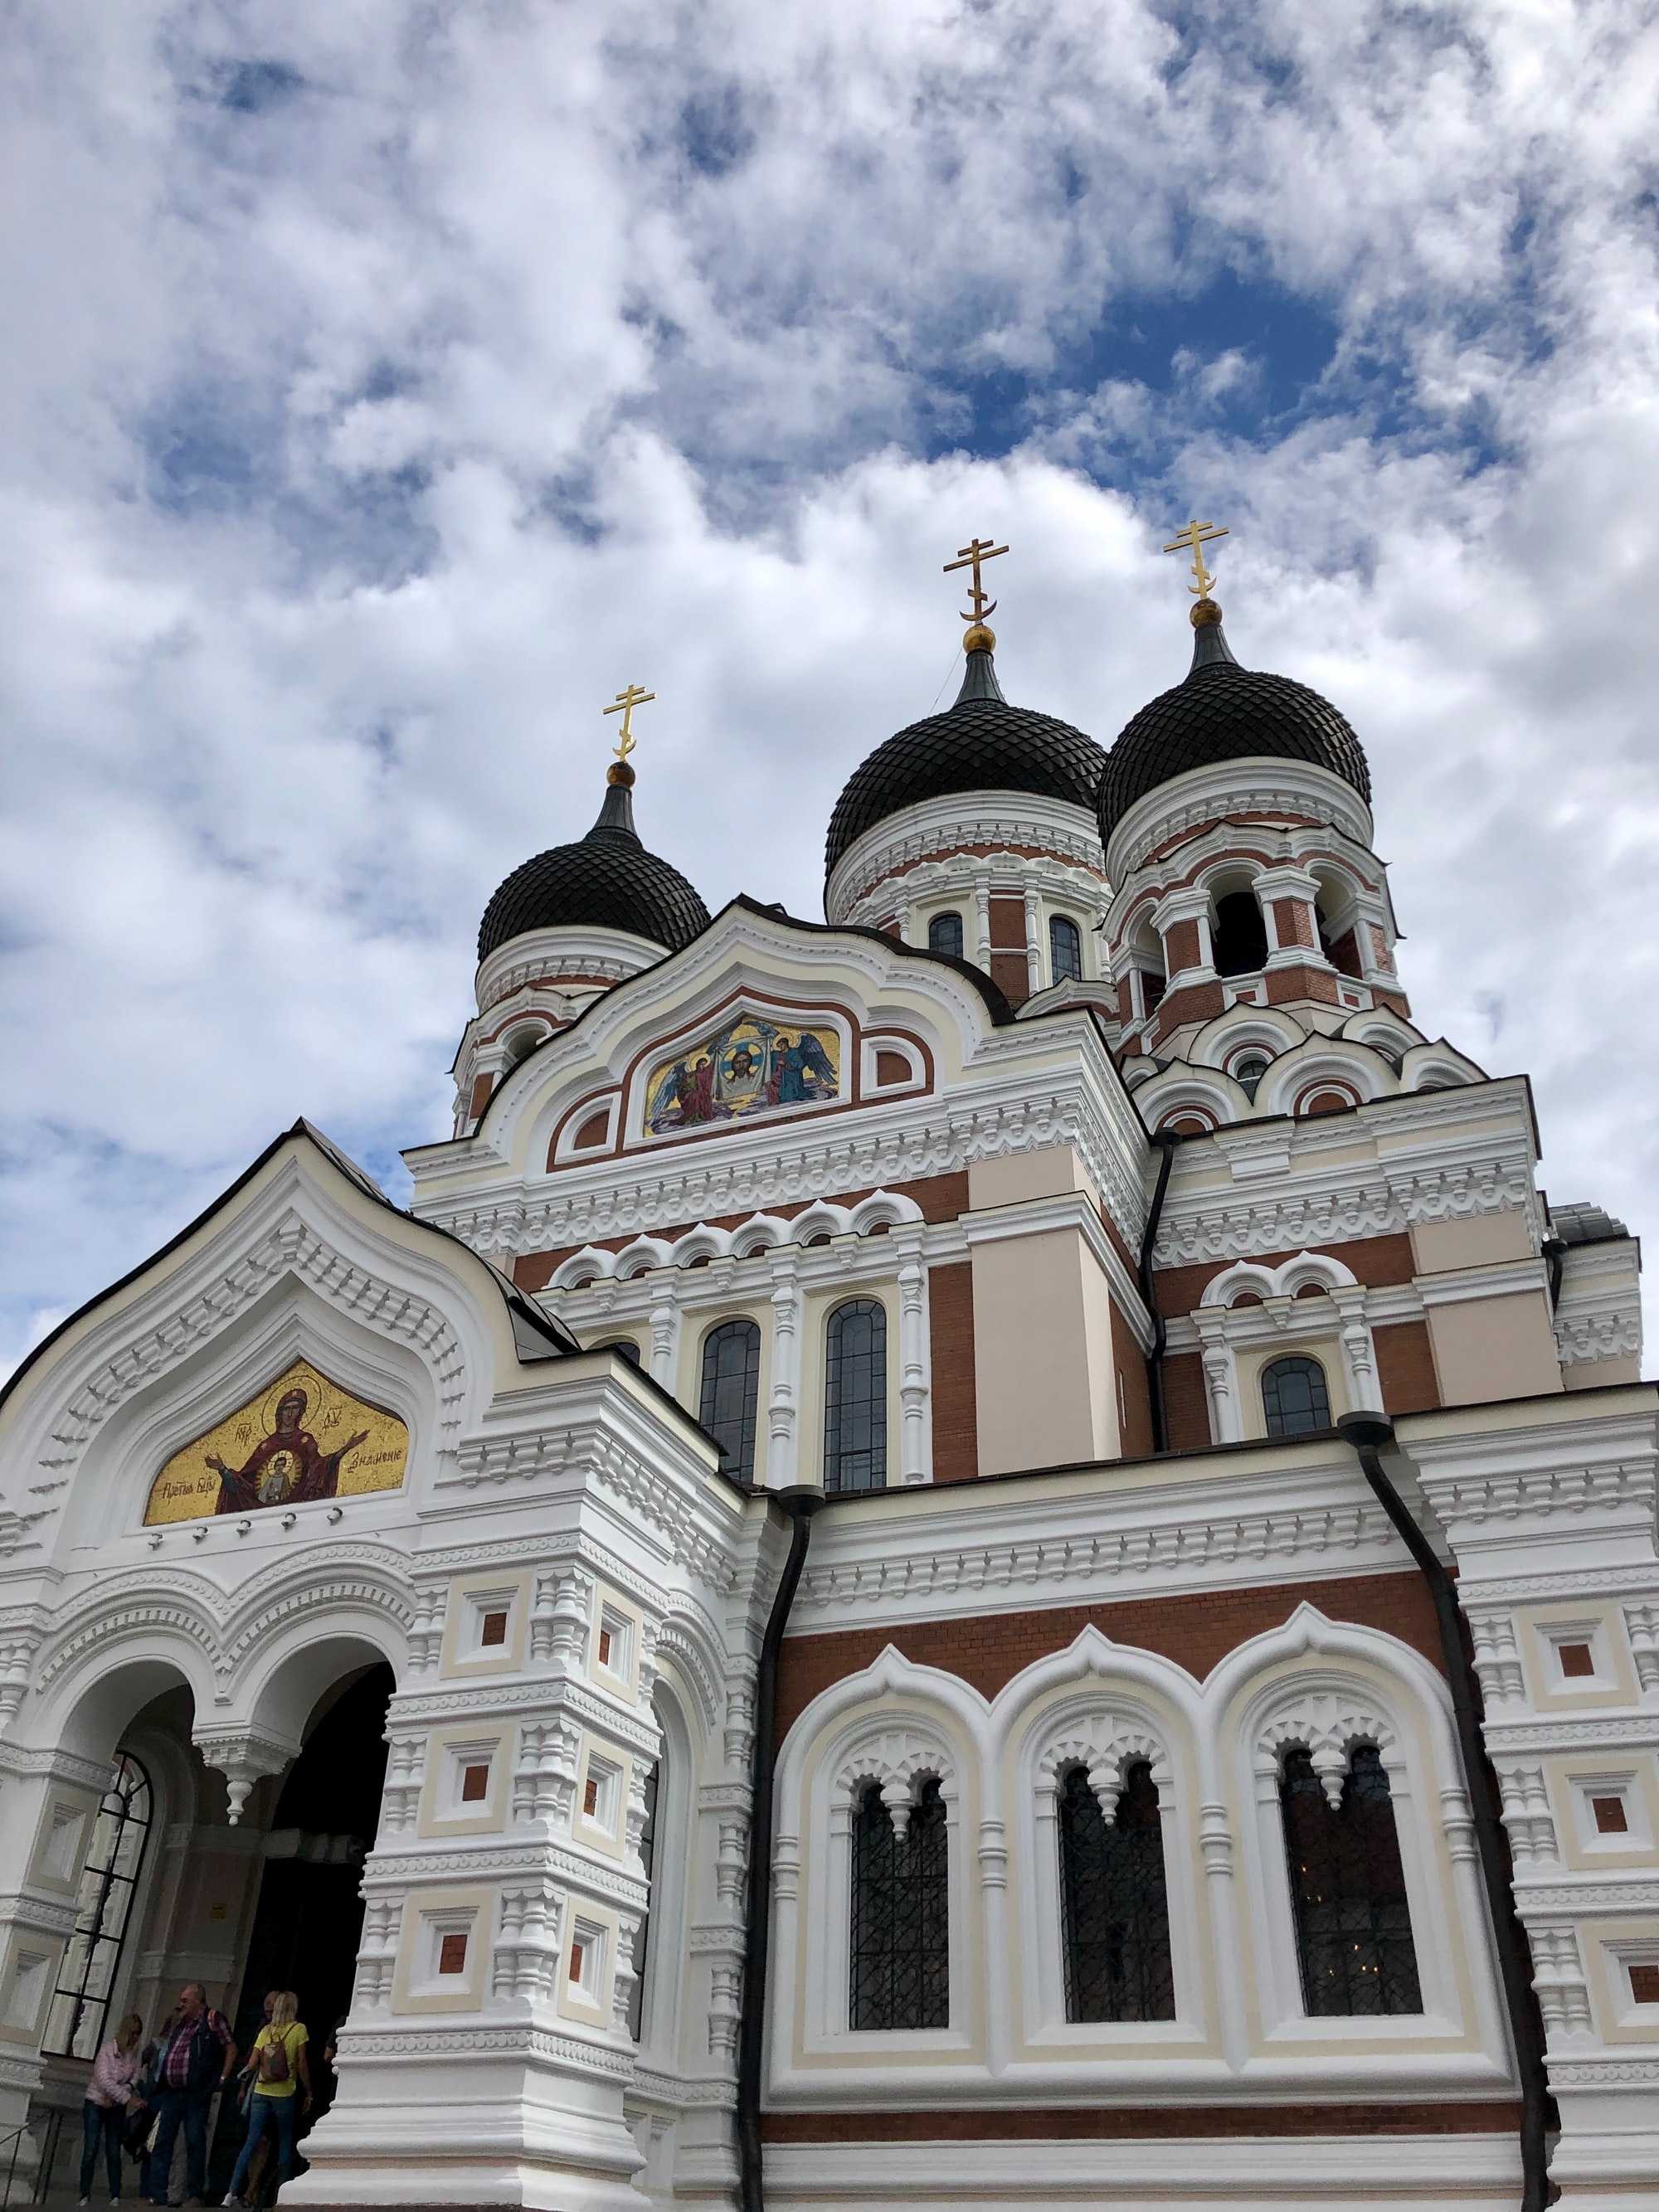 Alexander Nevsky Cathedral in Old Town Tallinn